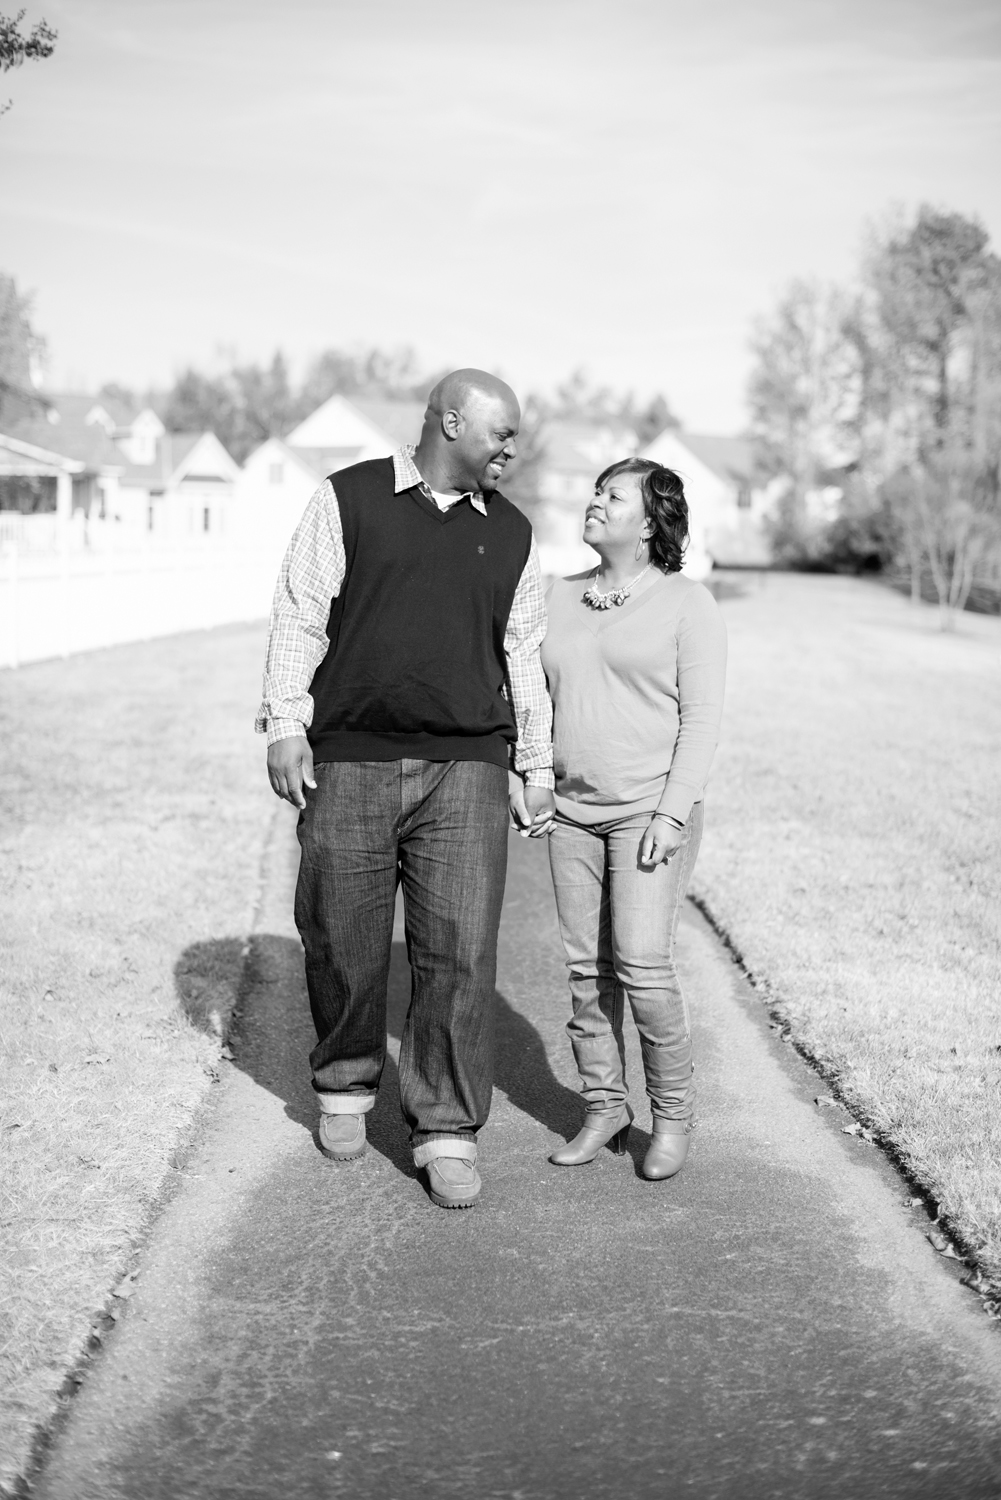 Husband and wife walk hand in hand on a paved path